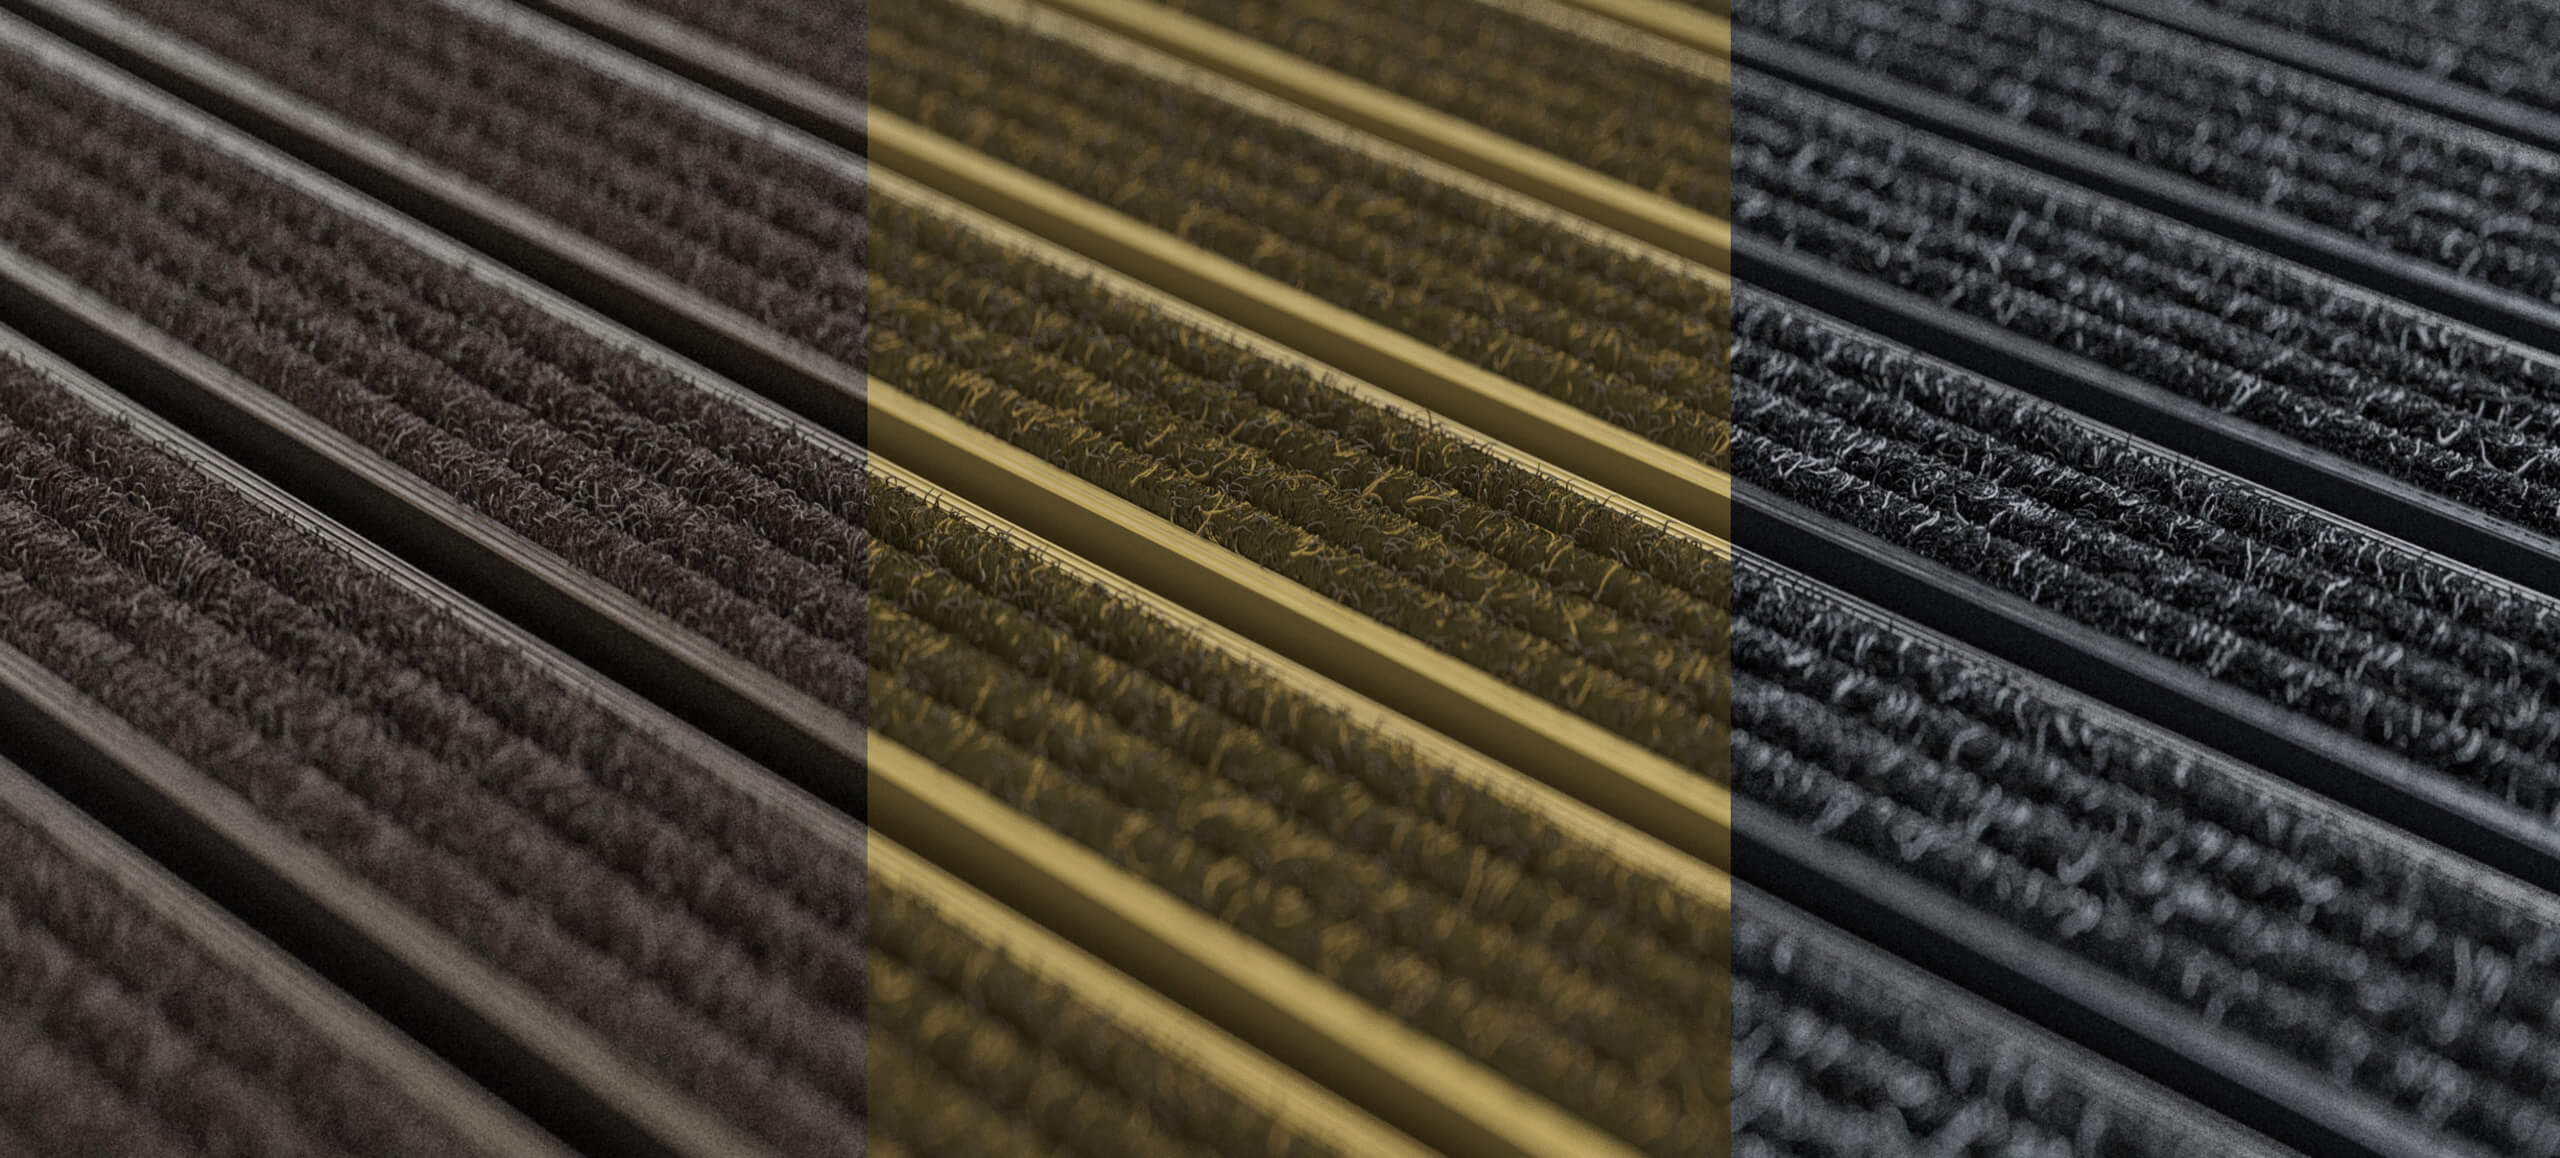 Coloured dirt-collection runners for theatres and cinemas